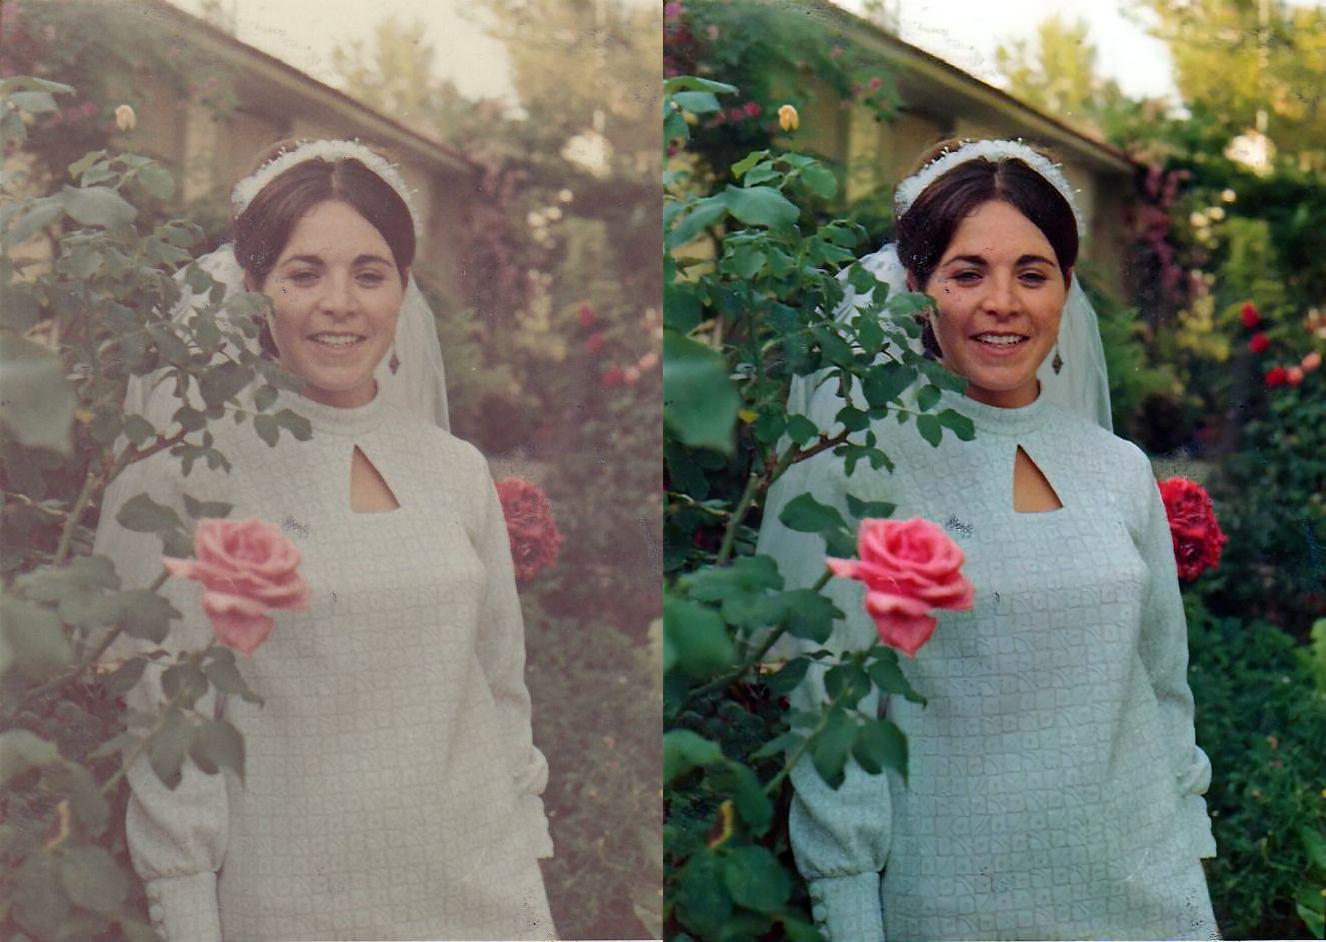 Left: faded color photo —a bride on her wedding day, Kibbutz Ramat Hashofet, Israel, June 1968. Right: the color-restored result